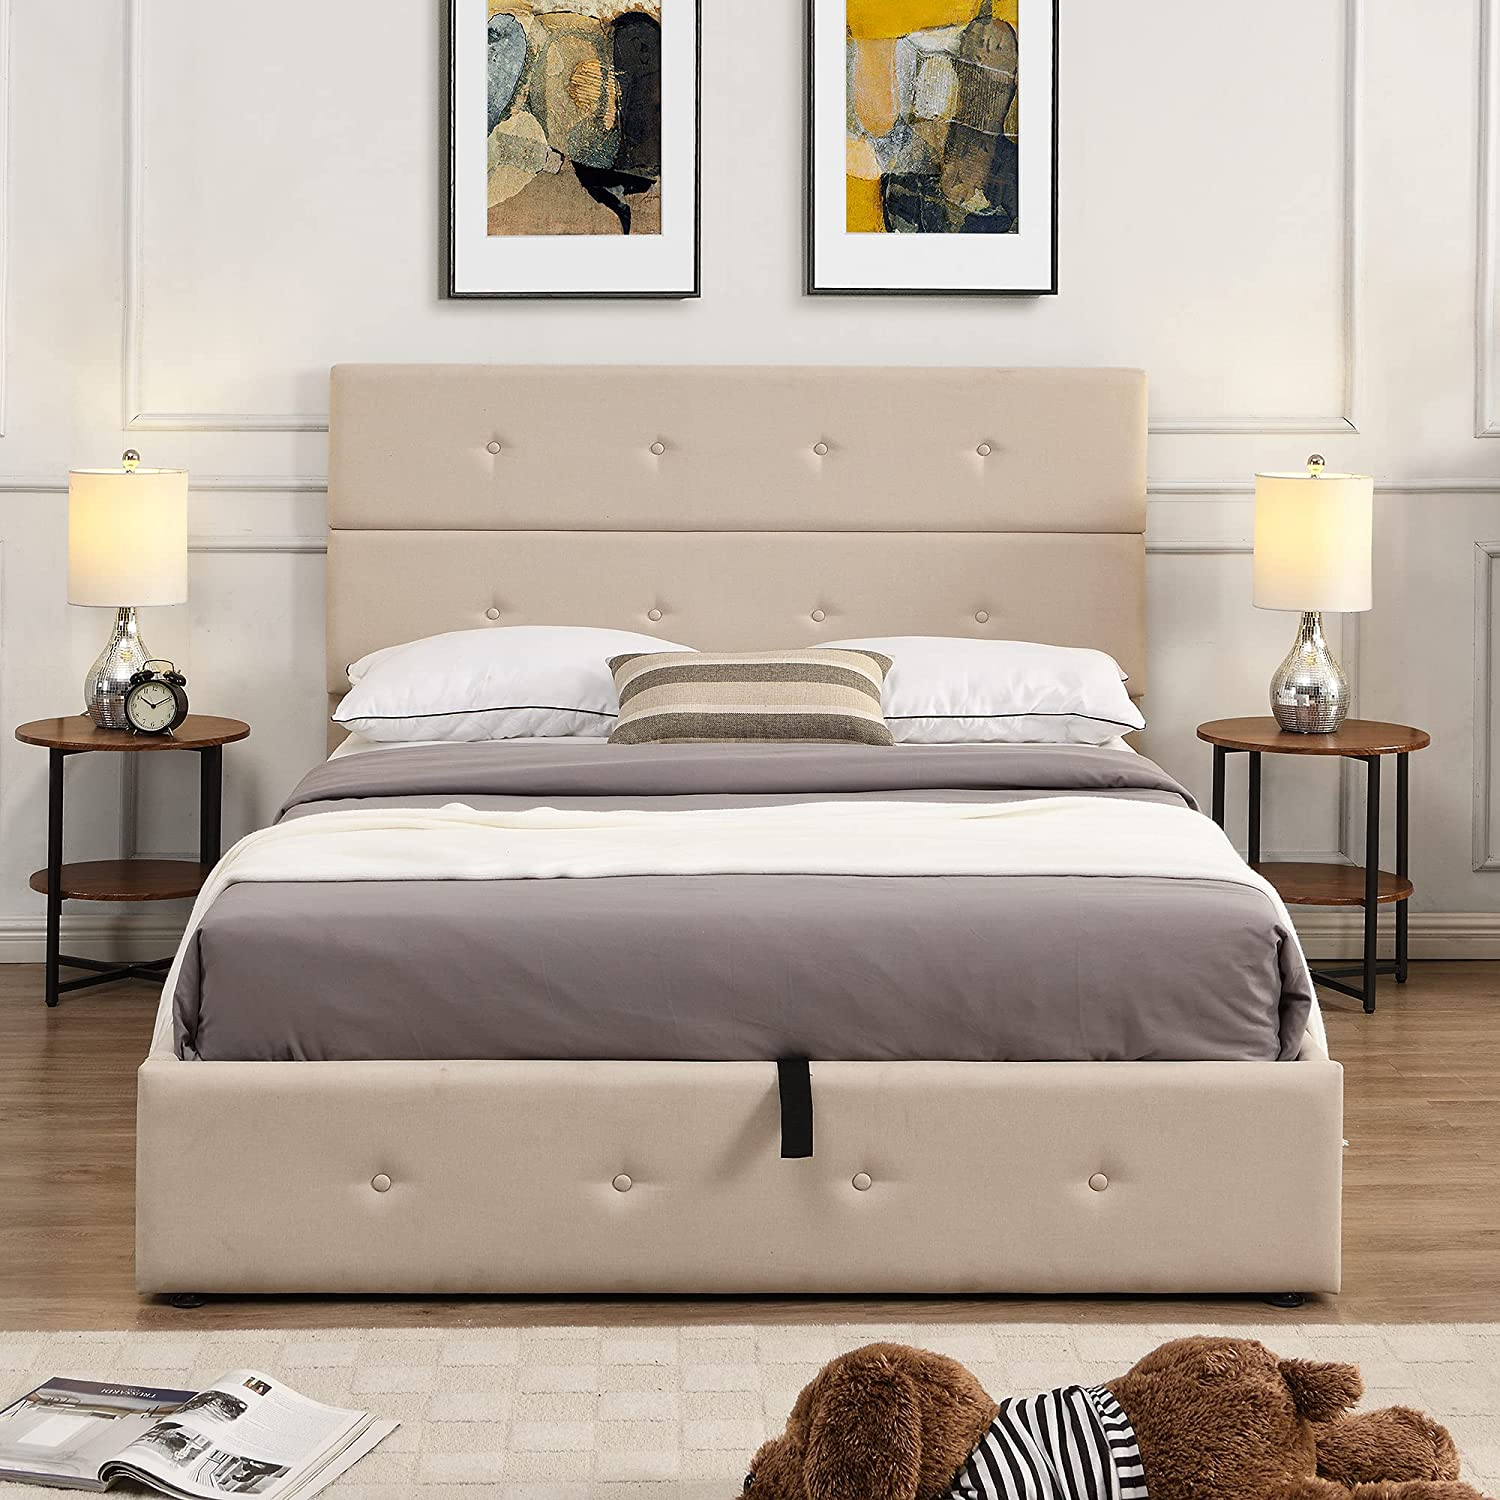 Danxee Upholstered Platform Max 84% OFF Bed Frame Underneath M Storage Cash special price with